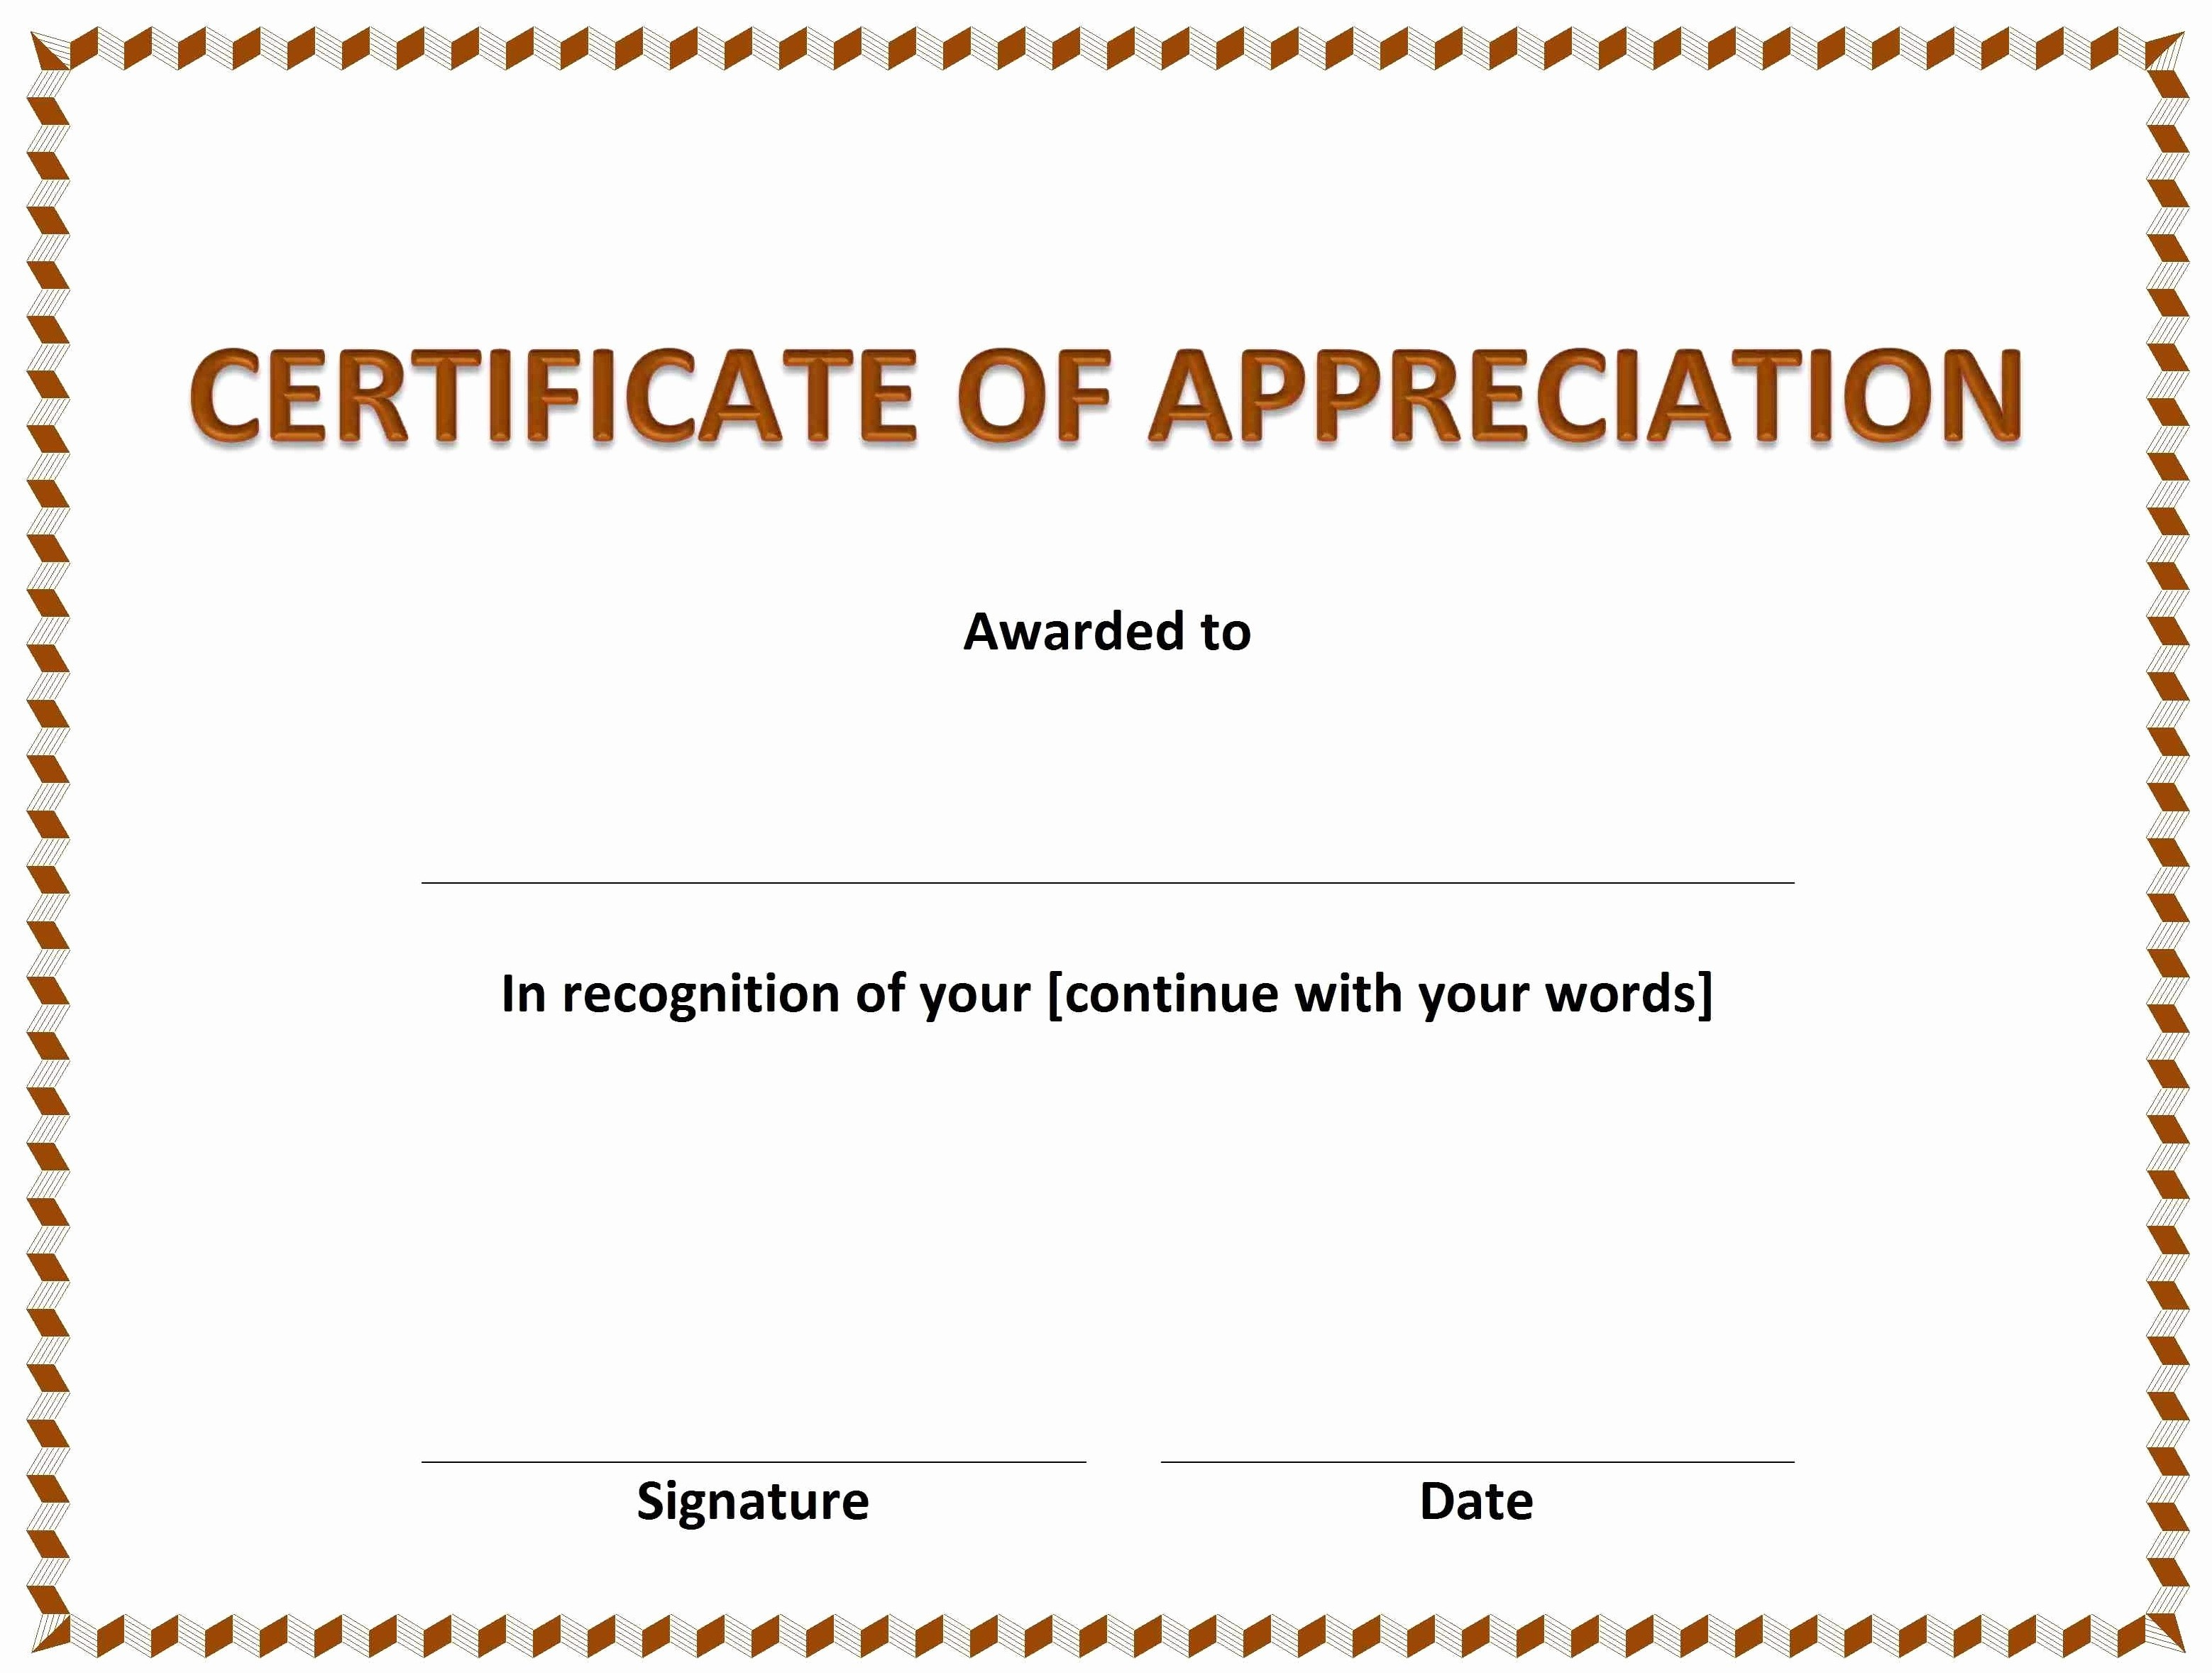 013 Certificates Of Appreciation Templates Printable Certificate - Free Printable Certificate Of Appreciation